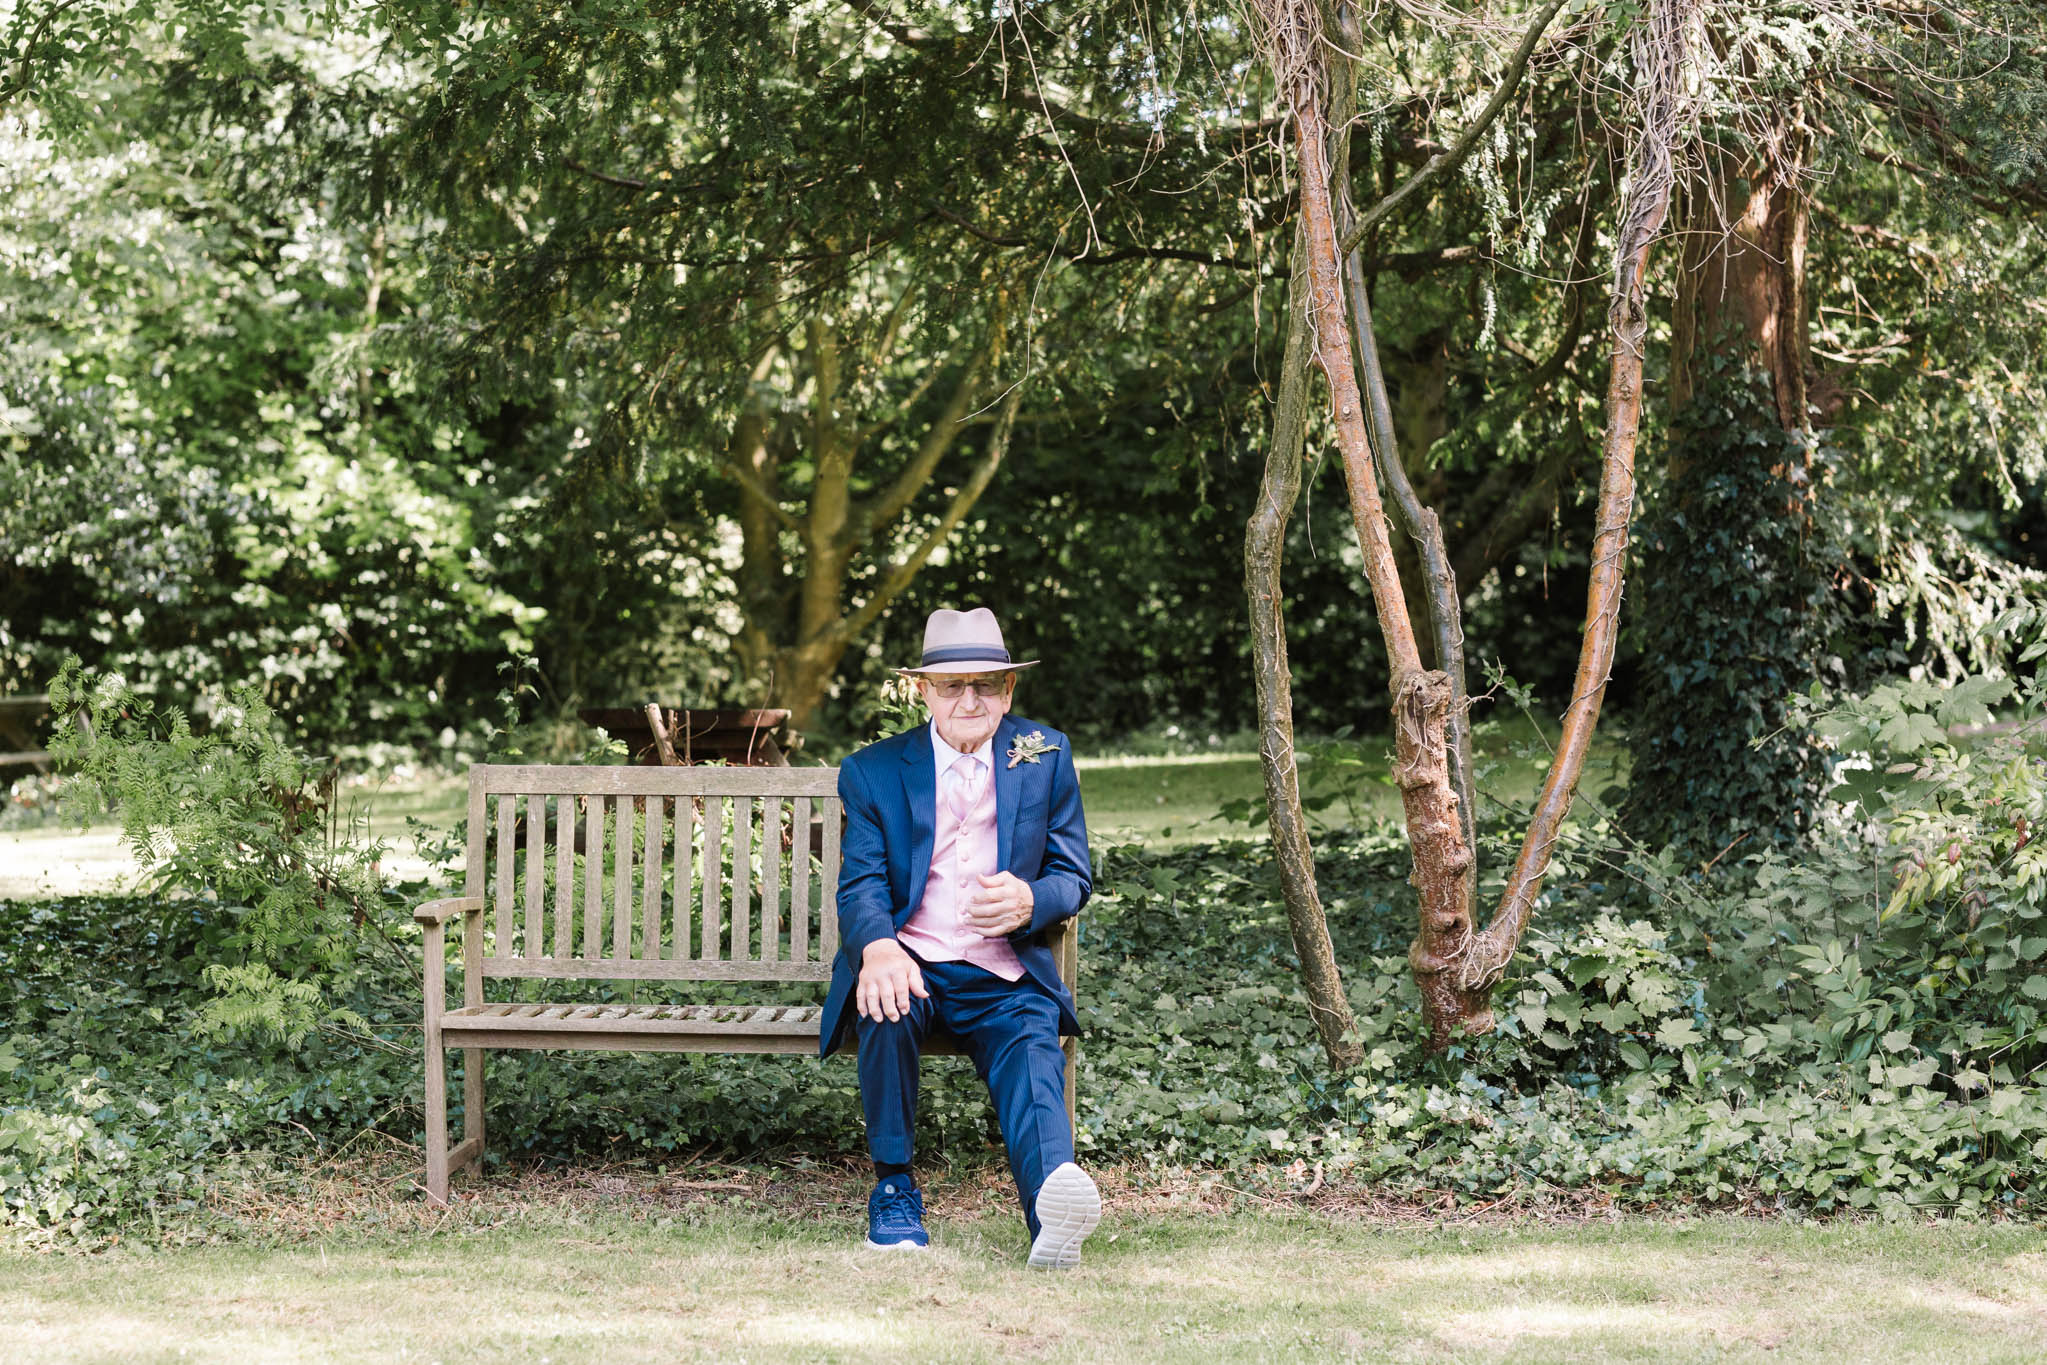 granddad sitting on bench in suit